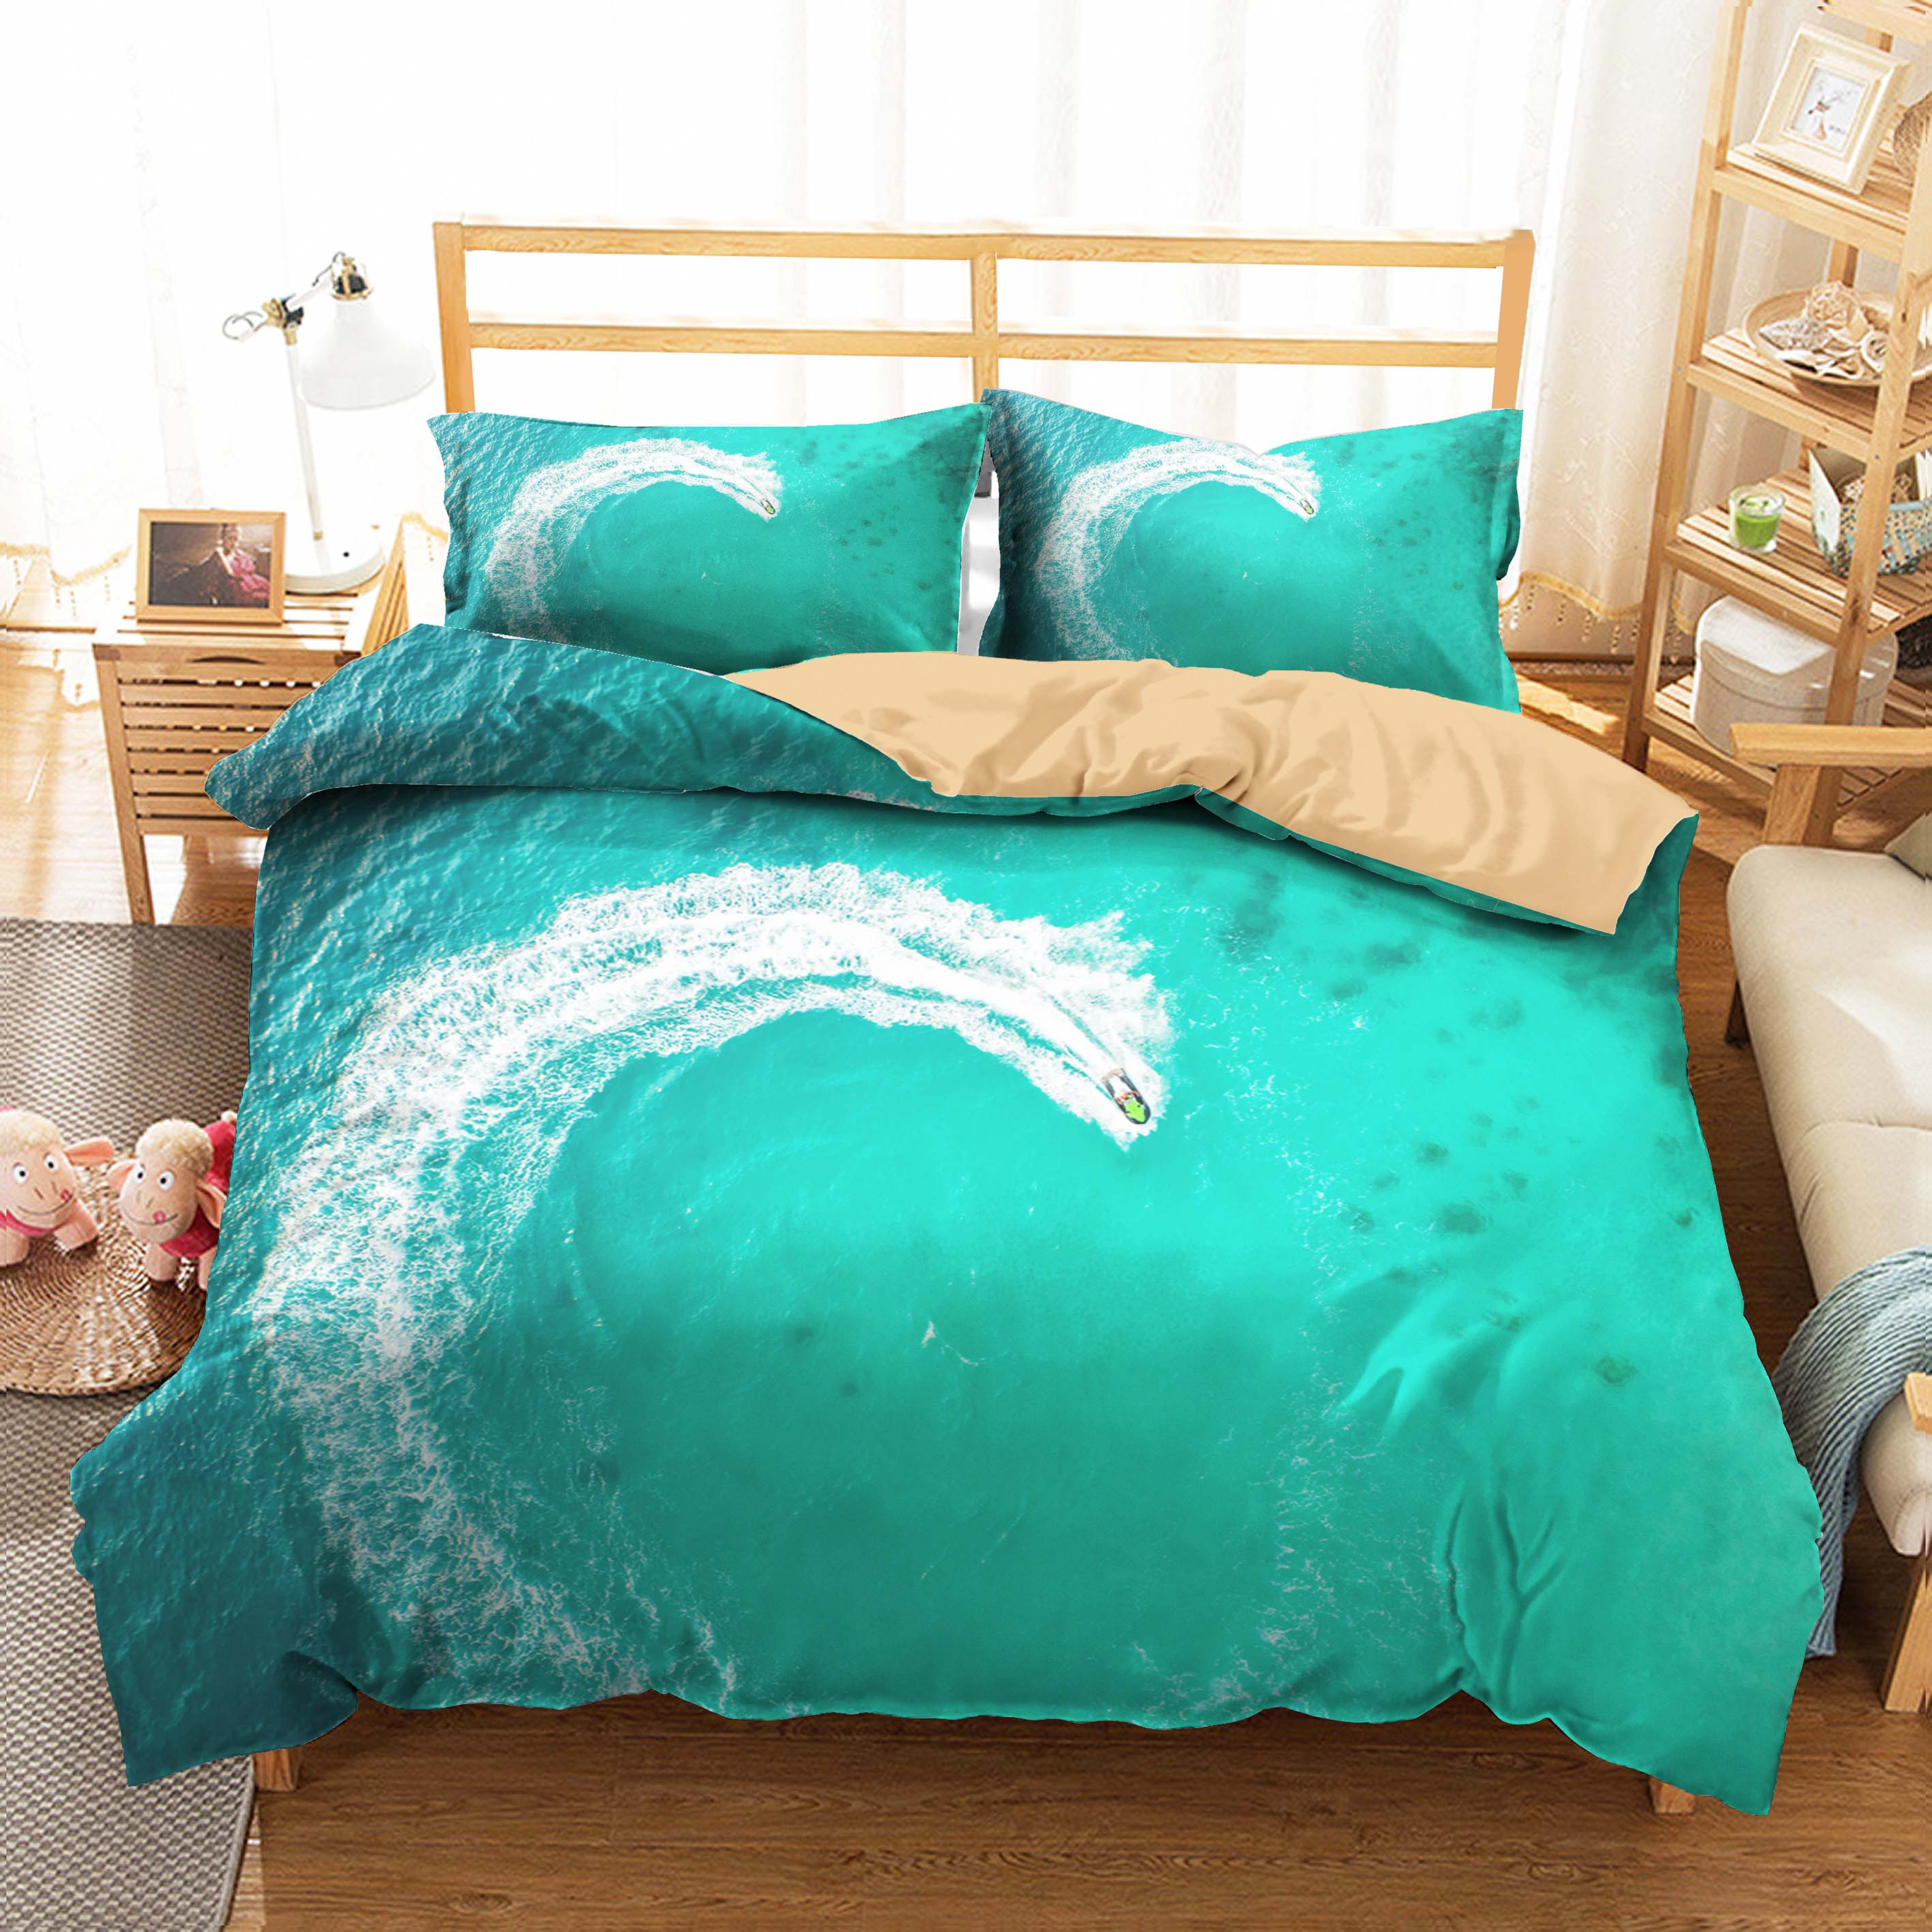 3d Bed Linen Sea Wave Printed Duvet Cover Set Home Textiles Polyester Material Queen Double Single Size with Pillowcases